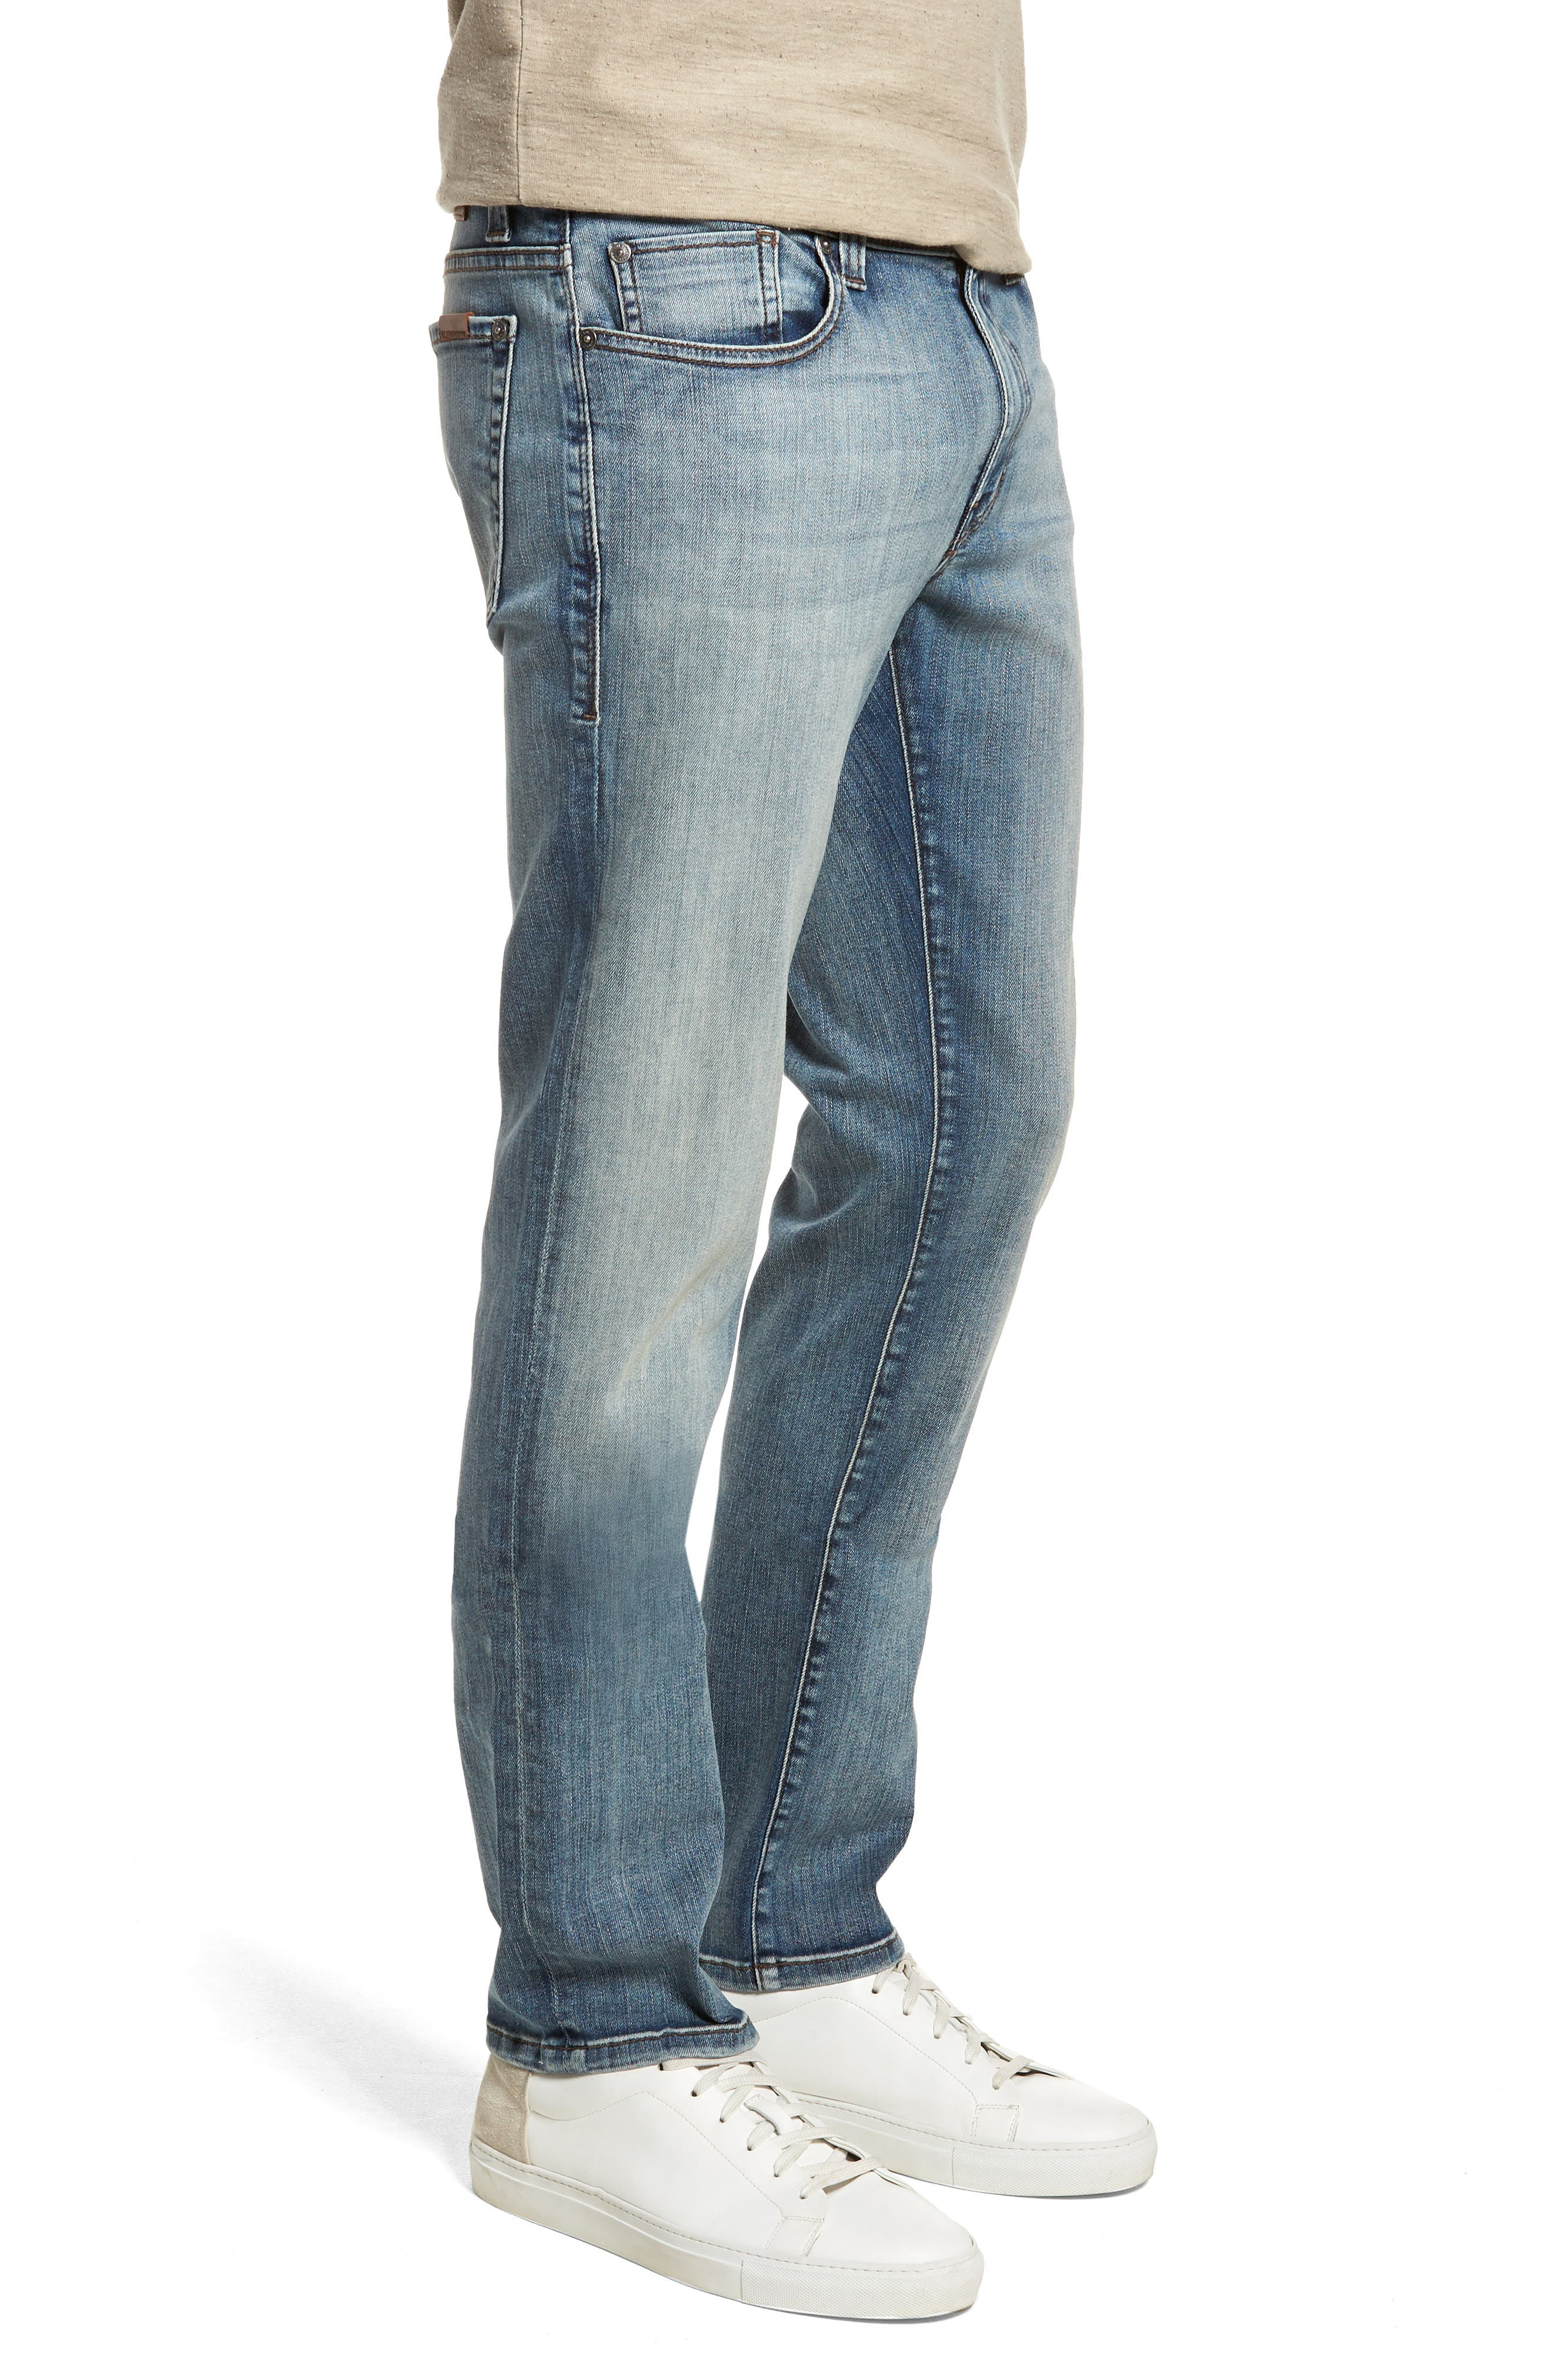 Jimmy Slim Fit Jeans,                             Alternate thumbnail 3, color,                             400